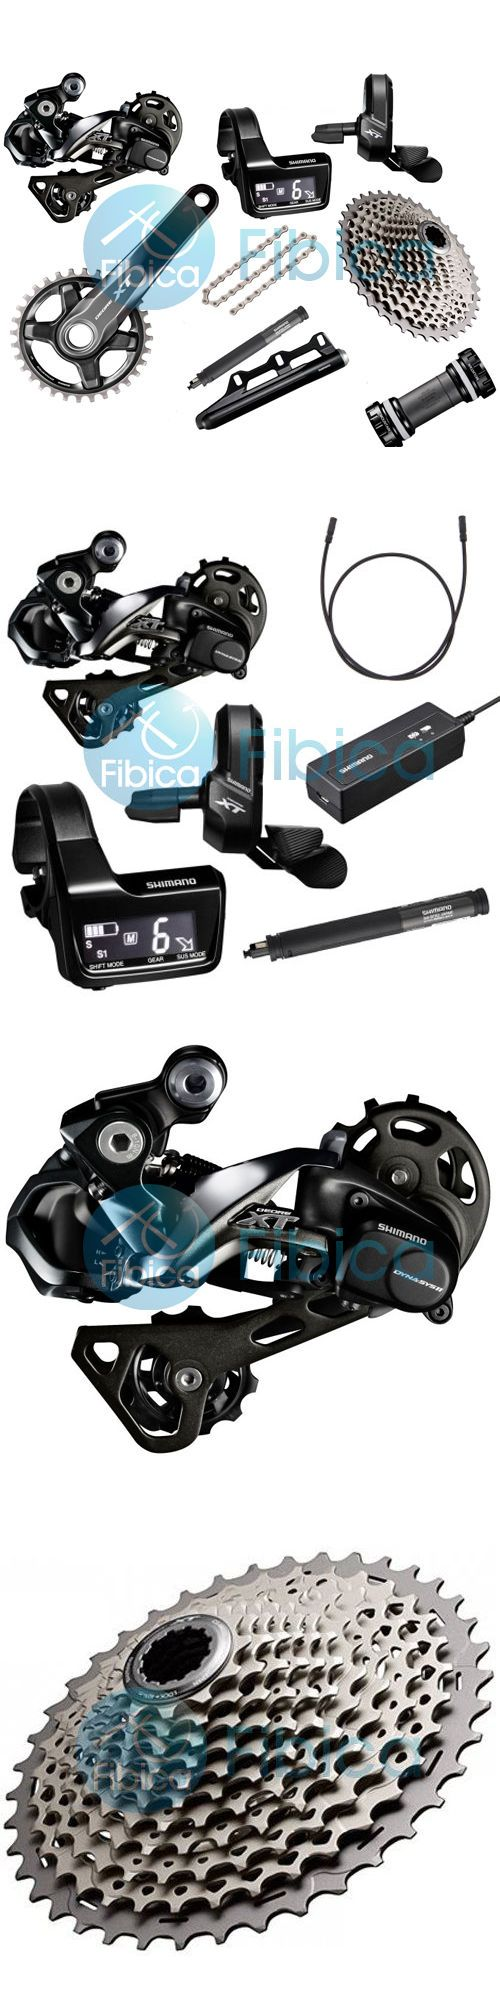 Build Kits and Gruppos 109120: New 2017 Shimano Deore Xt Di2 M8050 M8000 11-Speed Full Group Groupset 170/175Mm BUY IT NOW ONLY: $1169.99